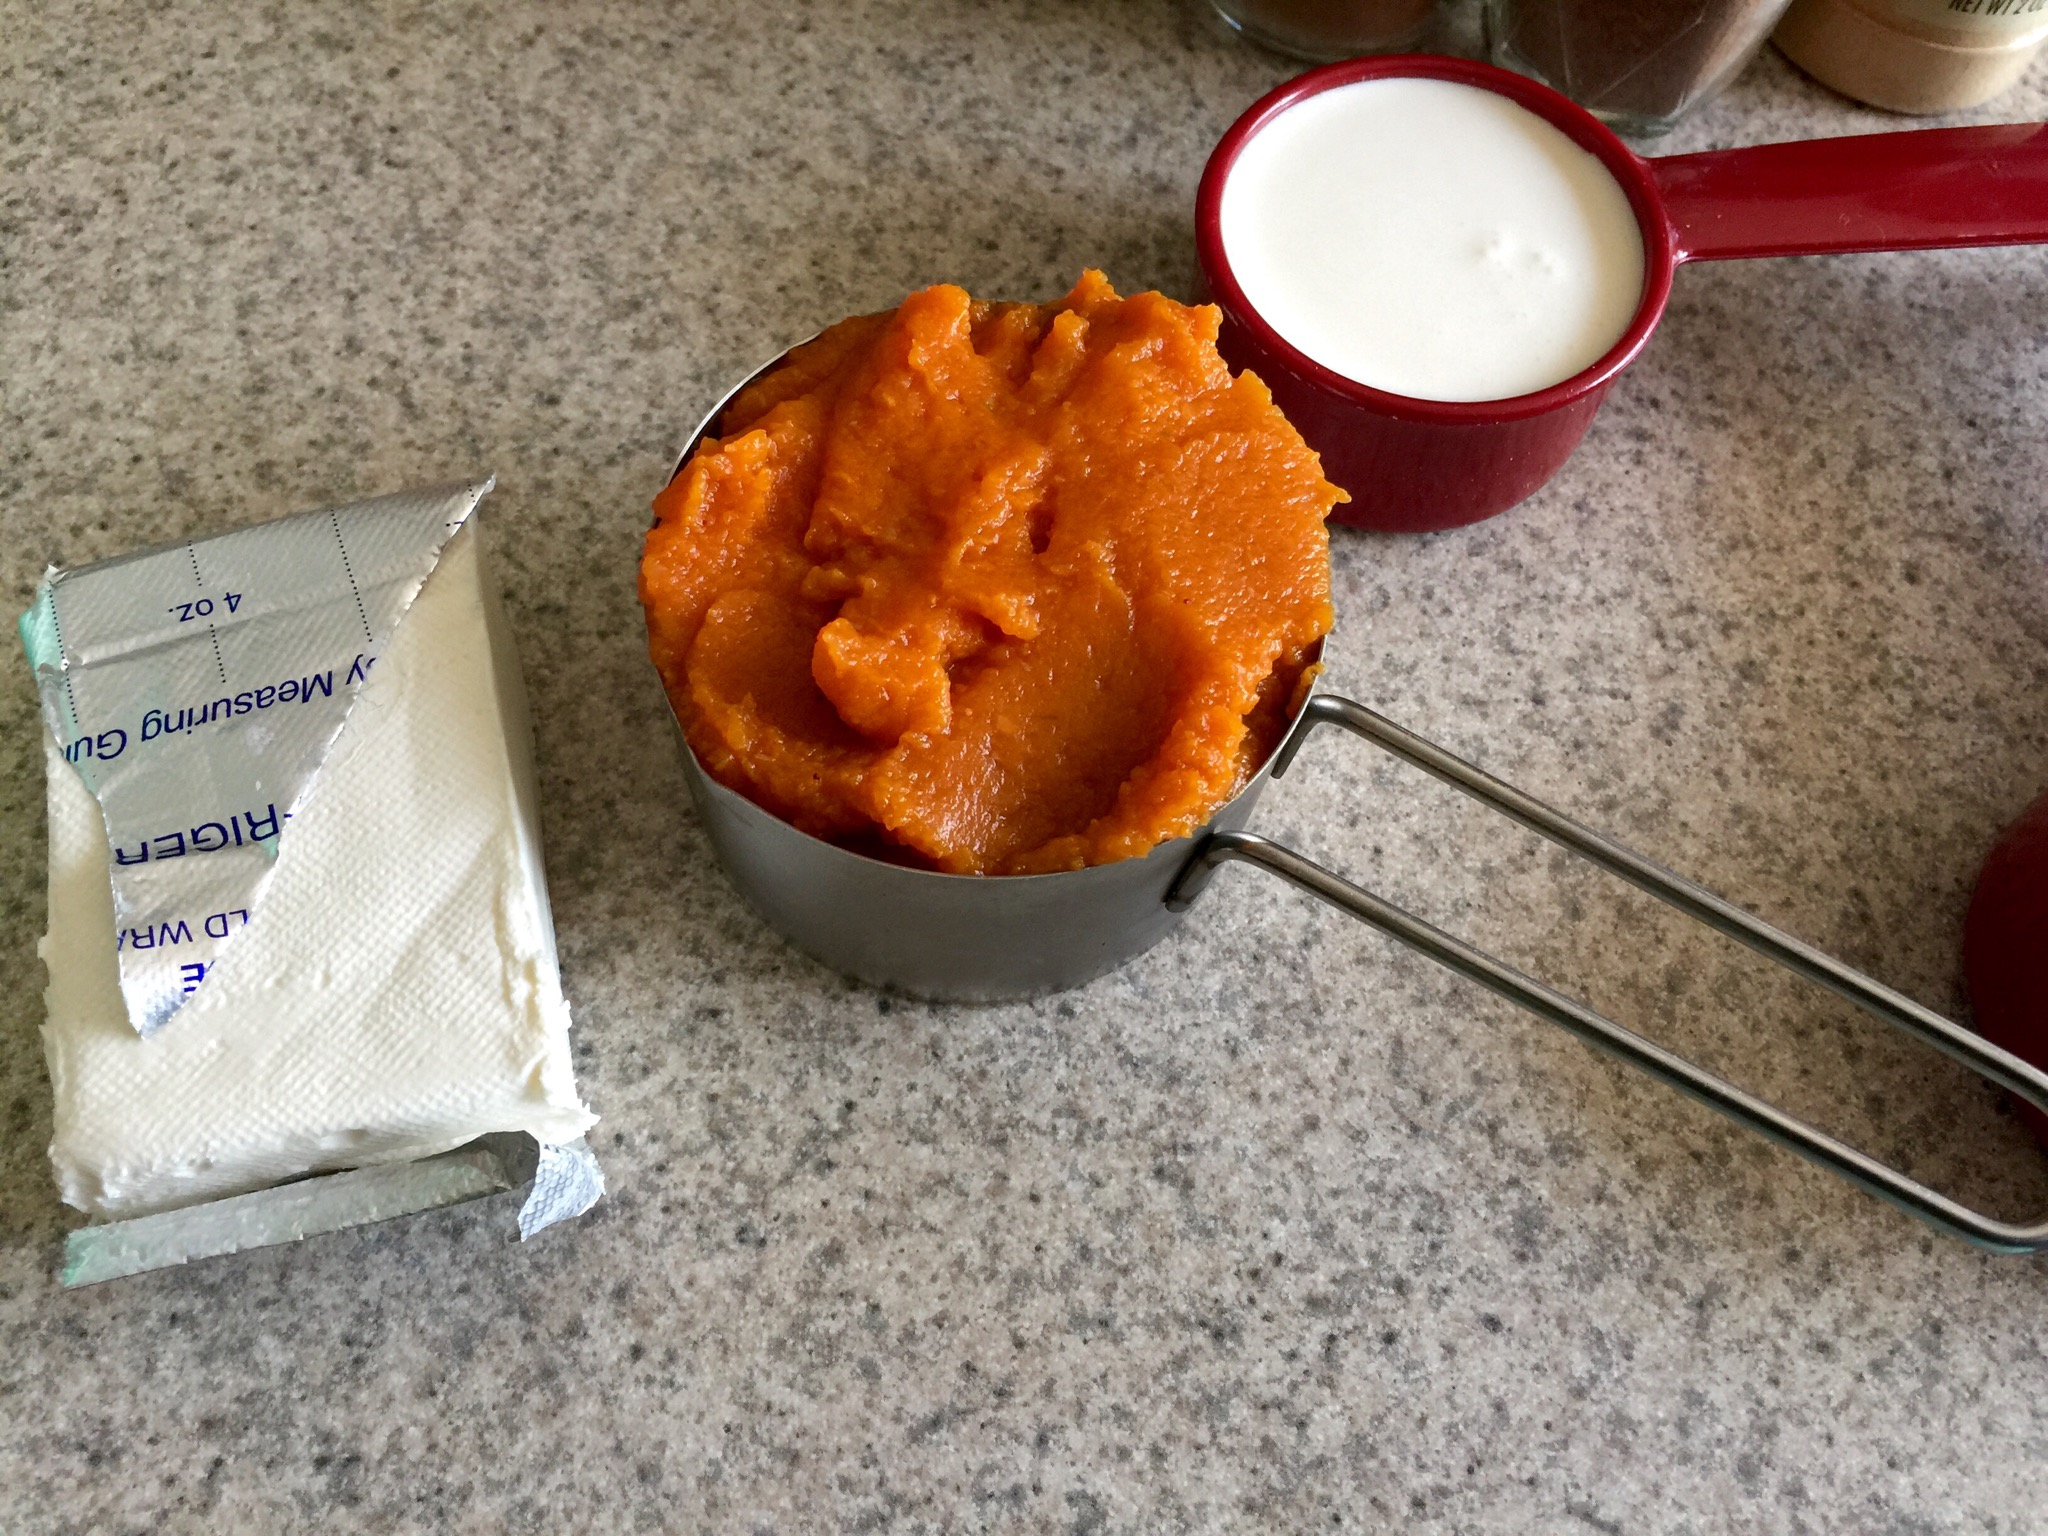 Measure out ingredients. 1/2 cup pumpkin, 1-2 tbsp's sweetener of choice, 3 tbsp of cream cheese, 1/4 cup of heavy cream. Add to blender. Add 1 cup or so of ice. Add spices. I just do a few shakes of each. Blend in blender. Mixture will be thick because of the whipping cream. Keep adding ice until you get your desired texture.